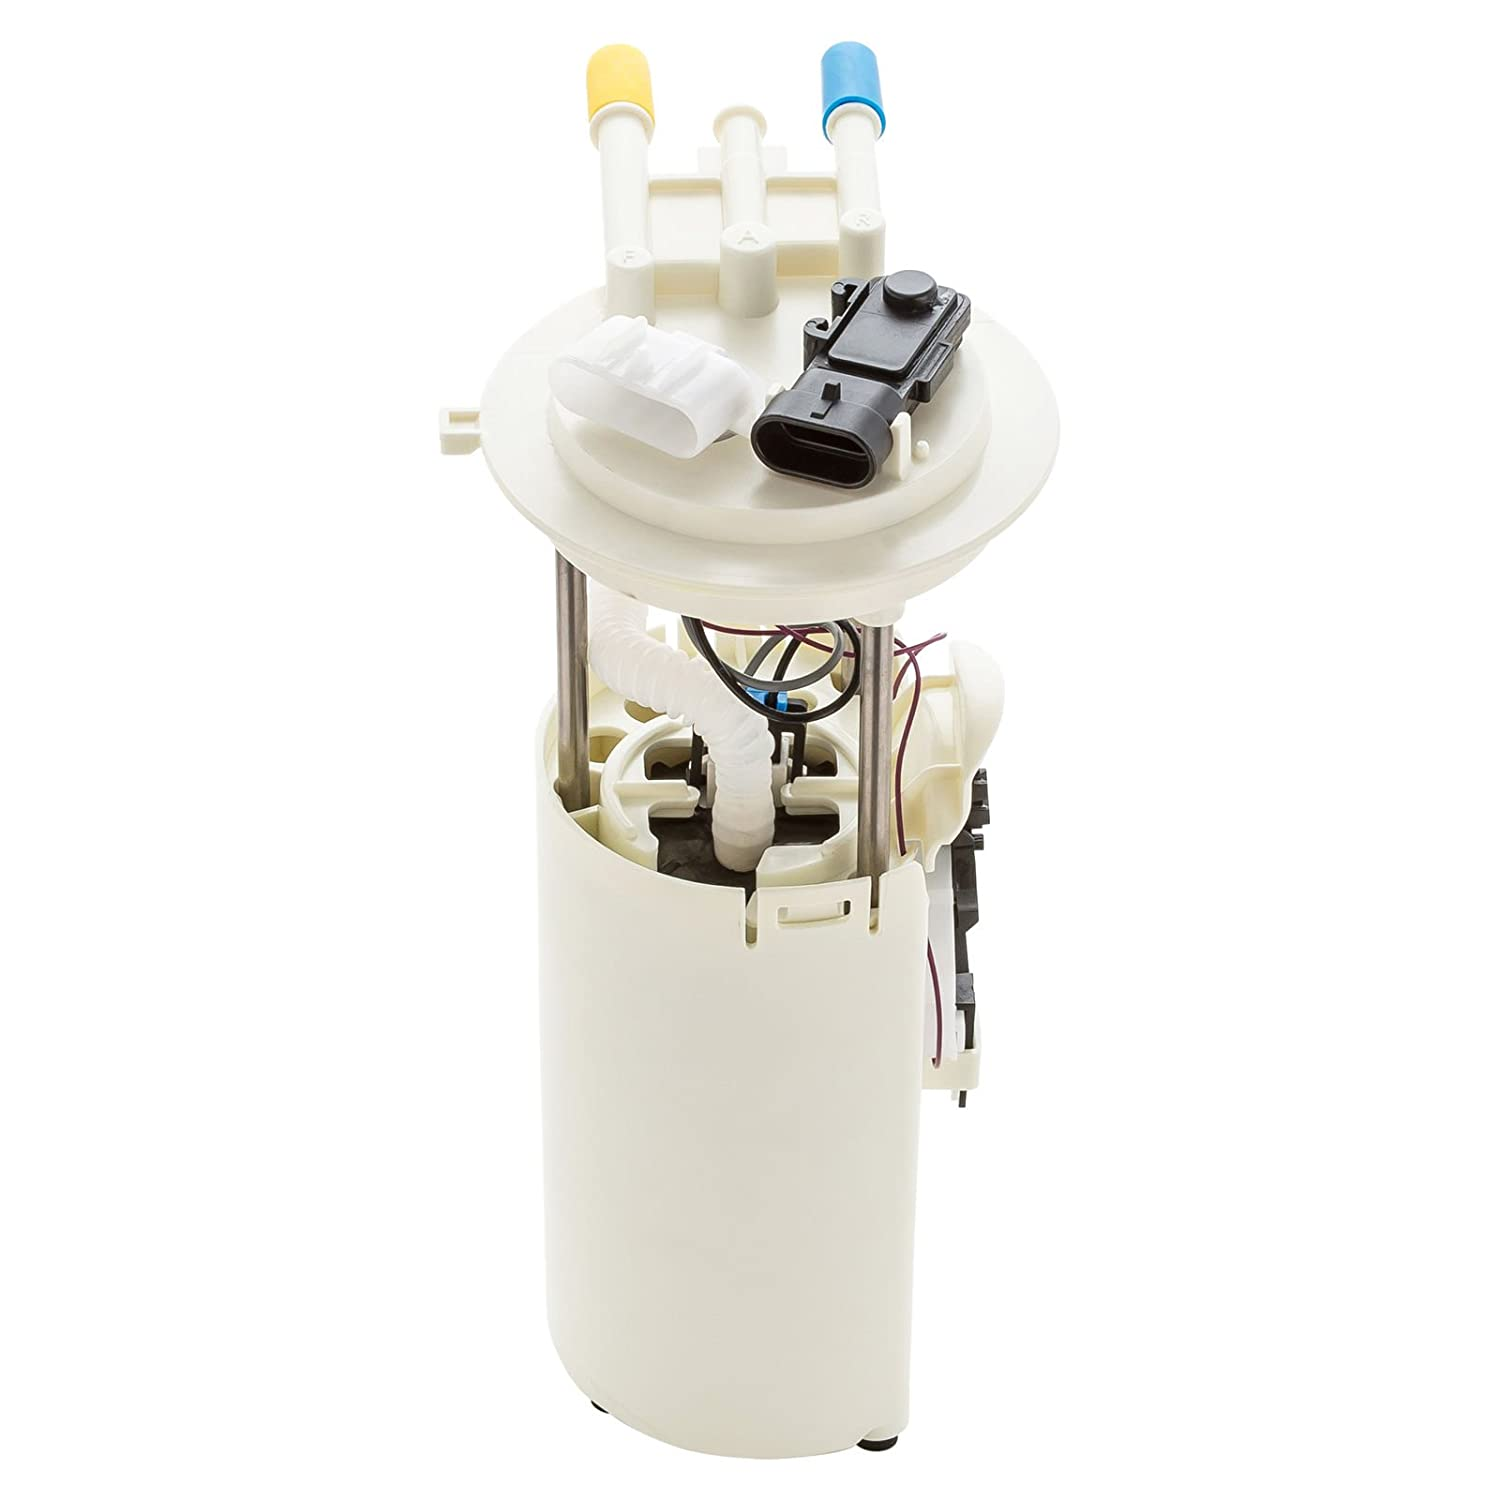 Fuel Pump Assembly For 00 01 Gmc Yukon Chevy Suburban 2000 Silverado Problems Auto Parts Diagrams 1500 Fits E3509m 19153716 Automotive